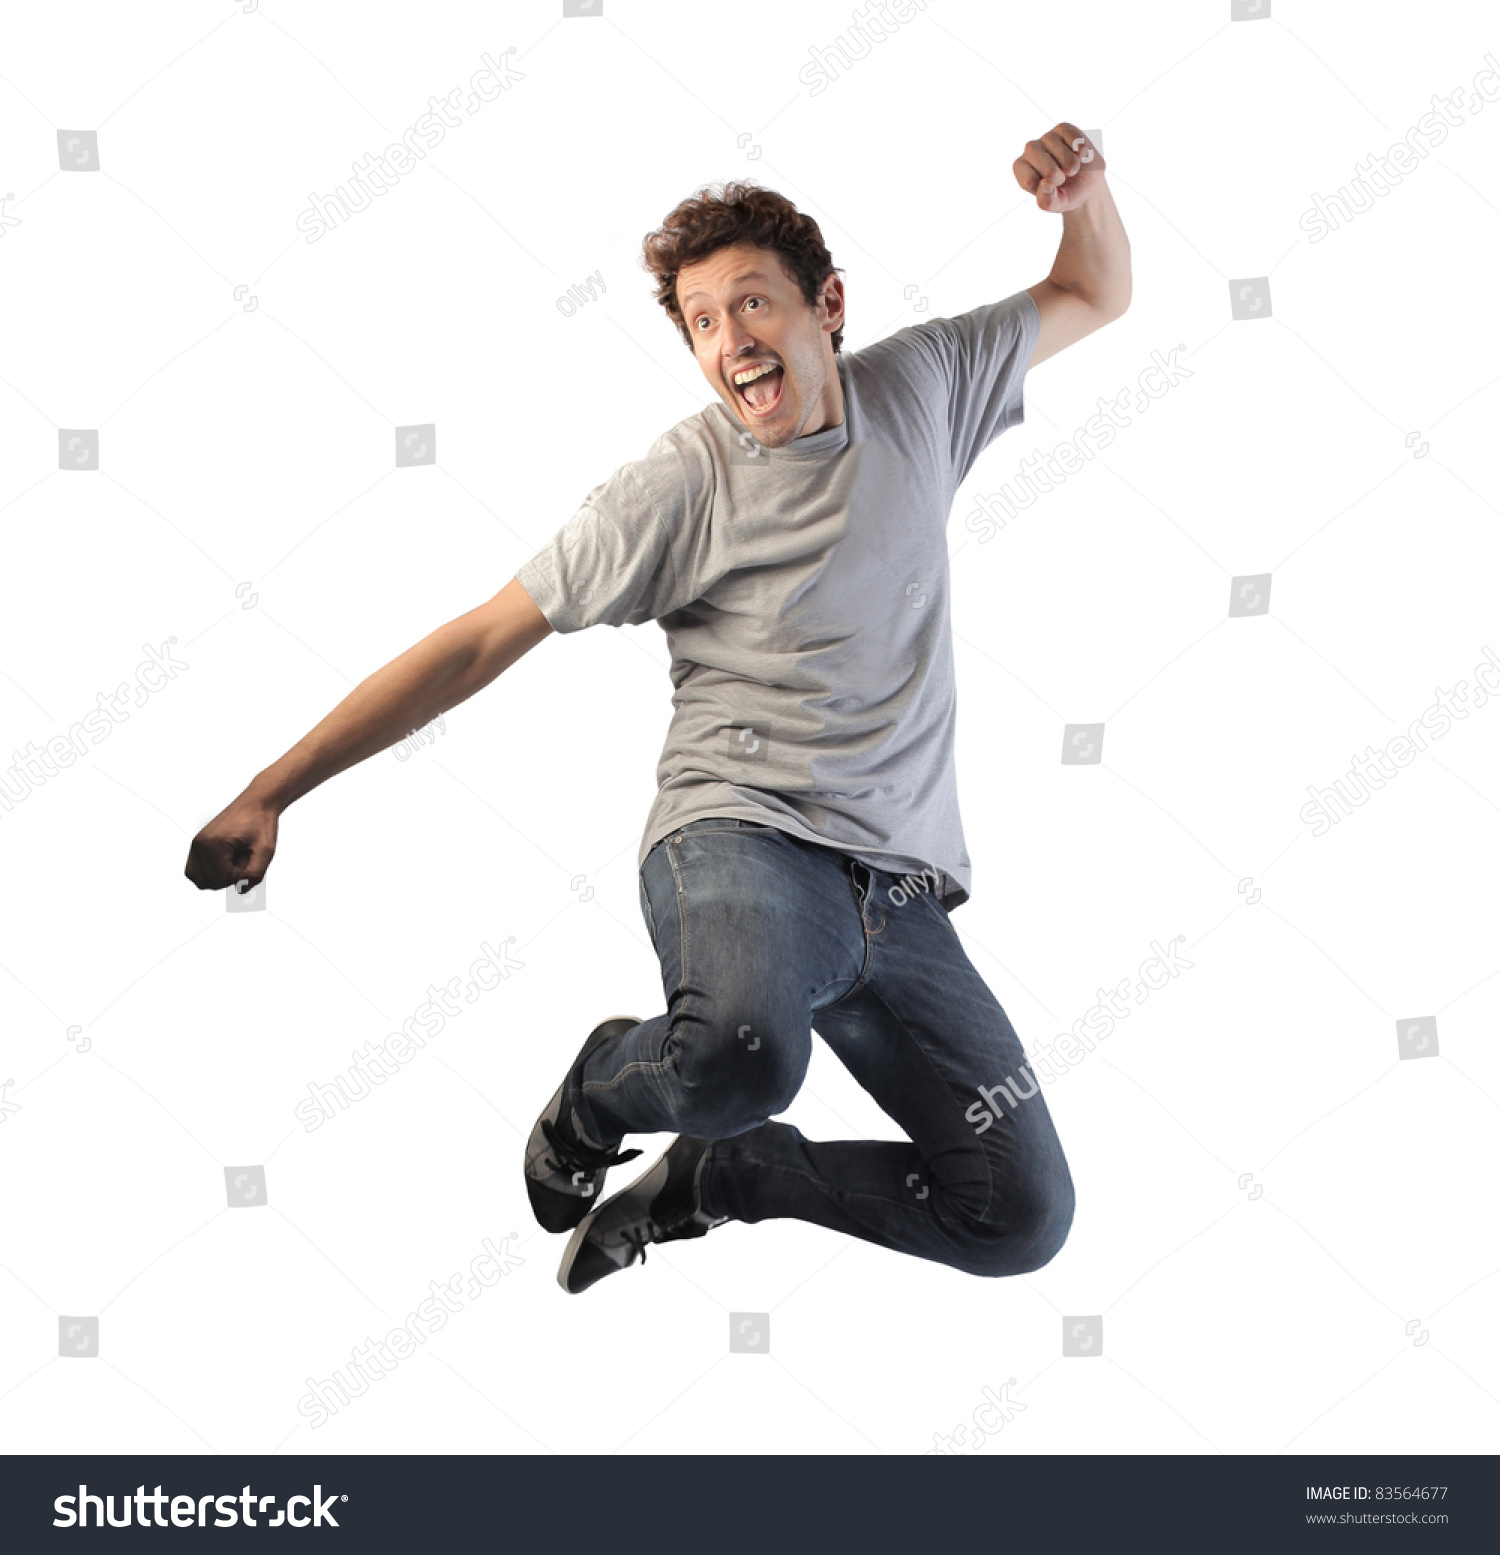 stock-photo-happy-man-jumping-83564677.jpg